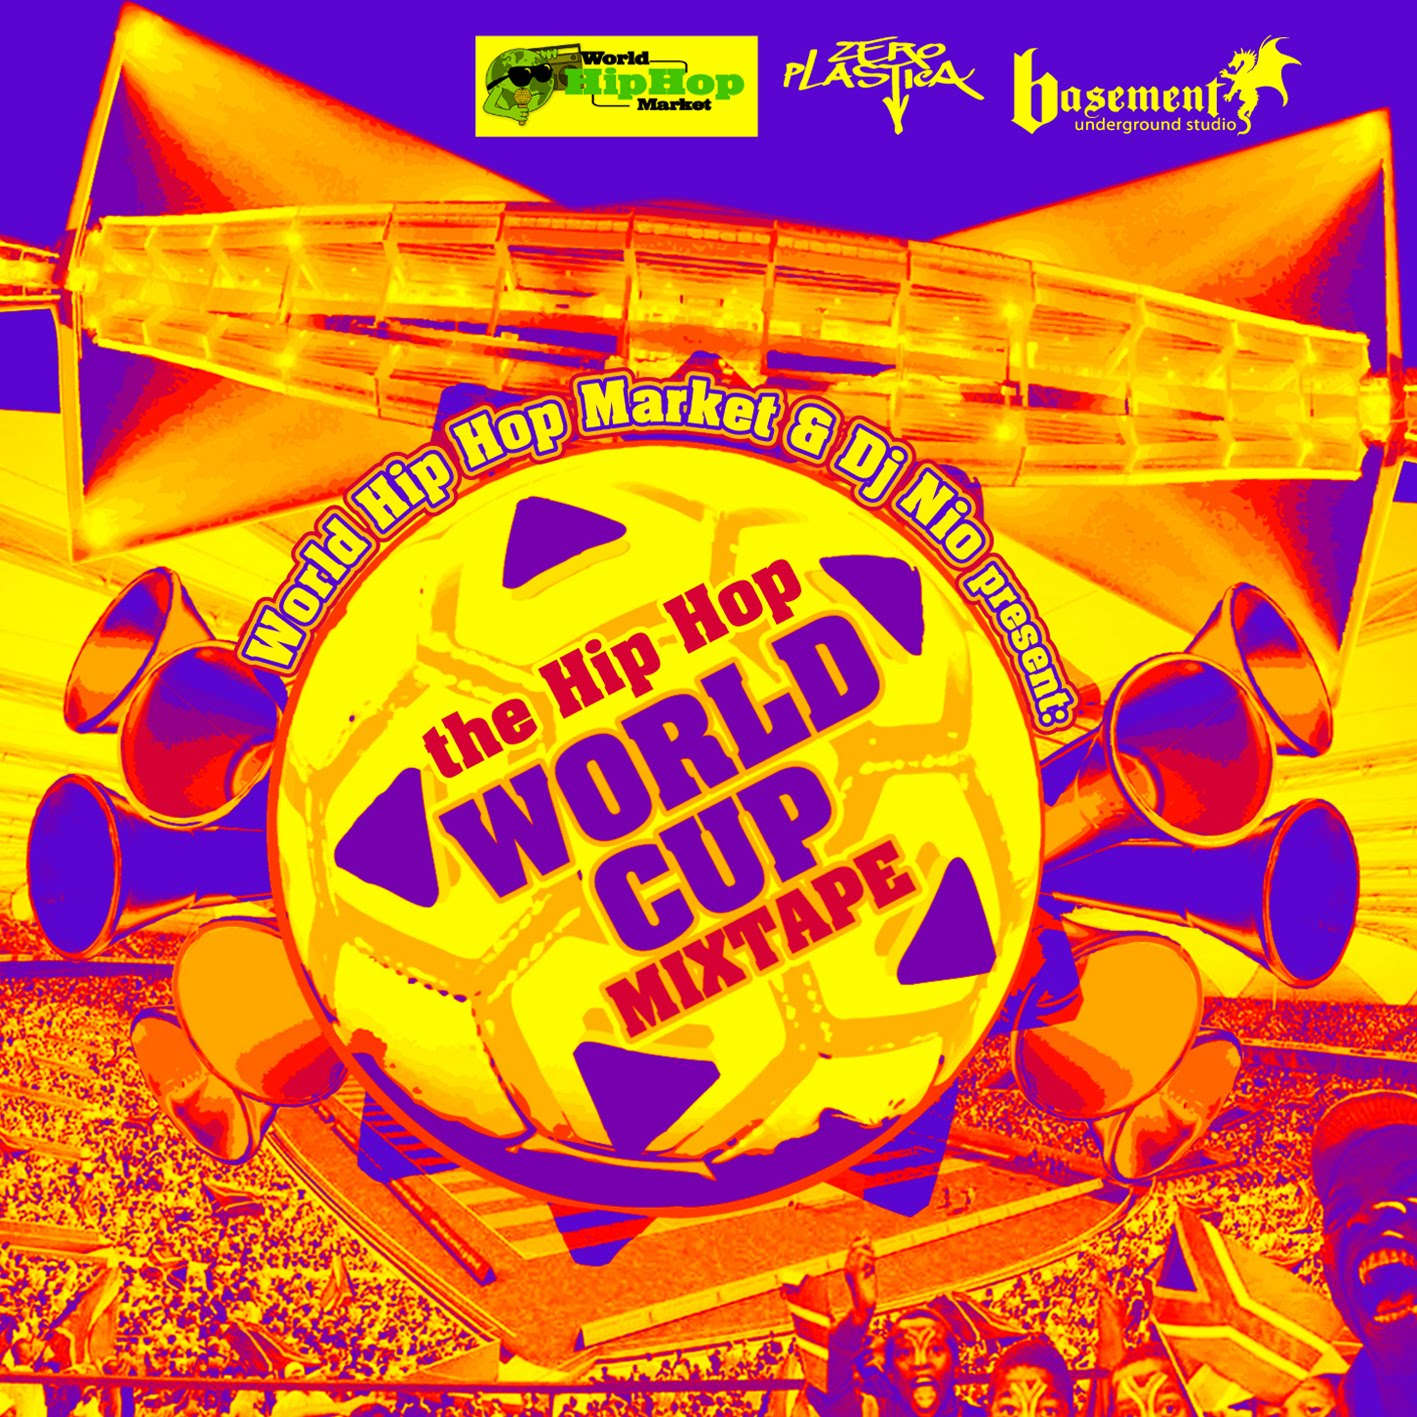 Dj Nio Hip Hop World Cup MIXTAPE cover 12x12 Hey Everyone, welcome to my personal website! My name is Aaliyah Love and I ...